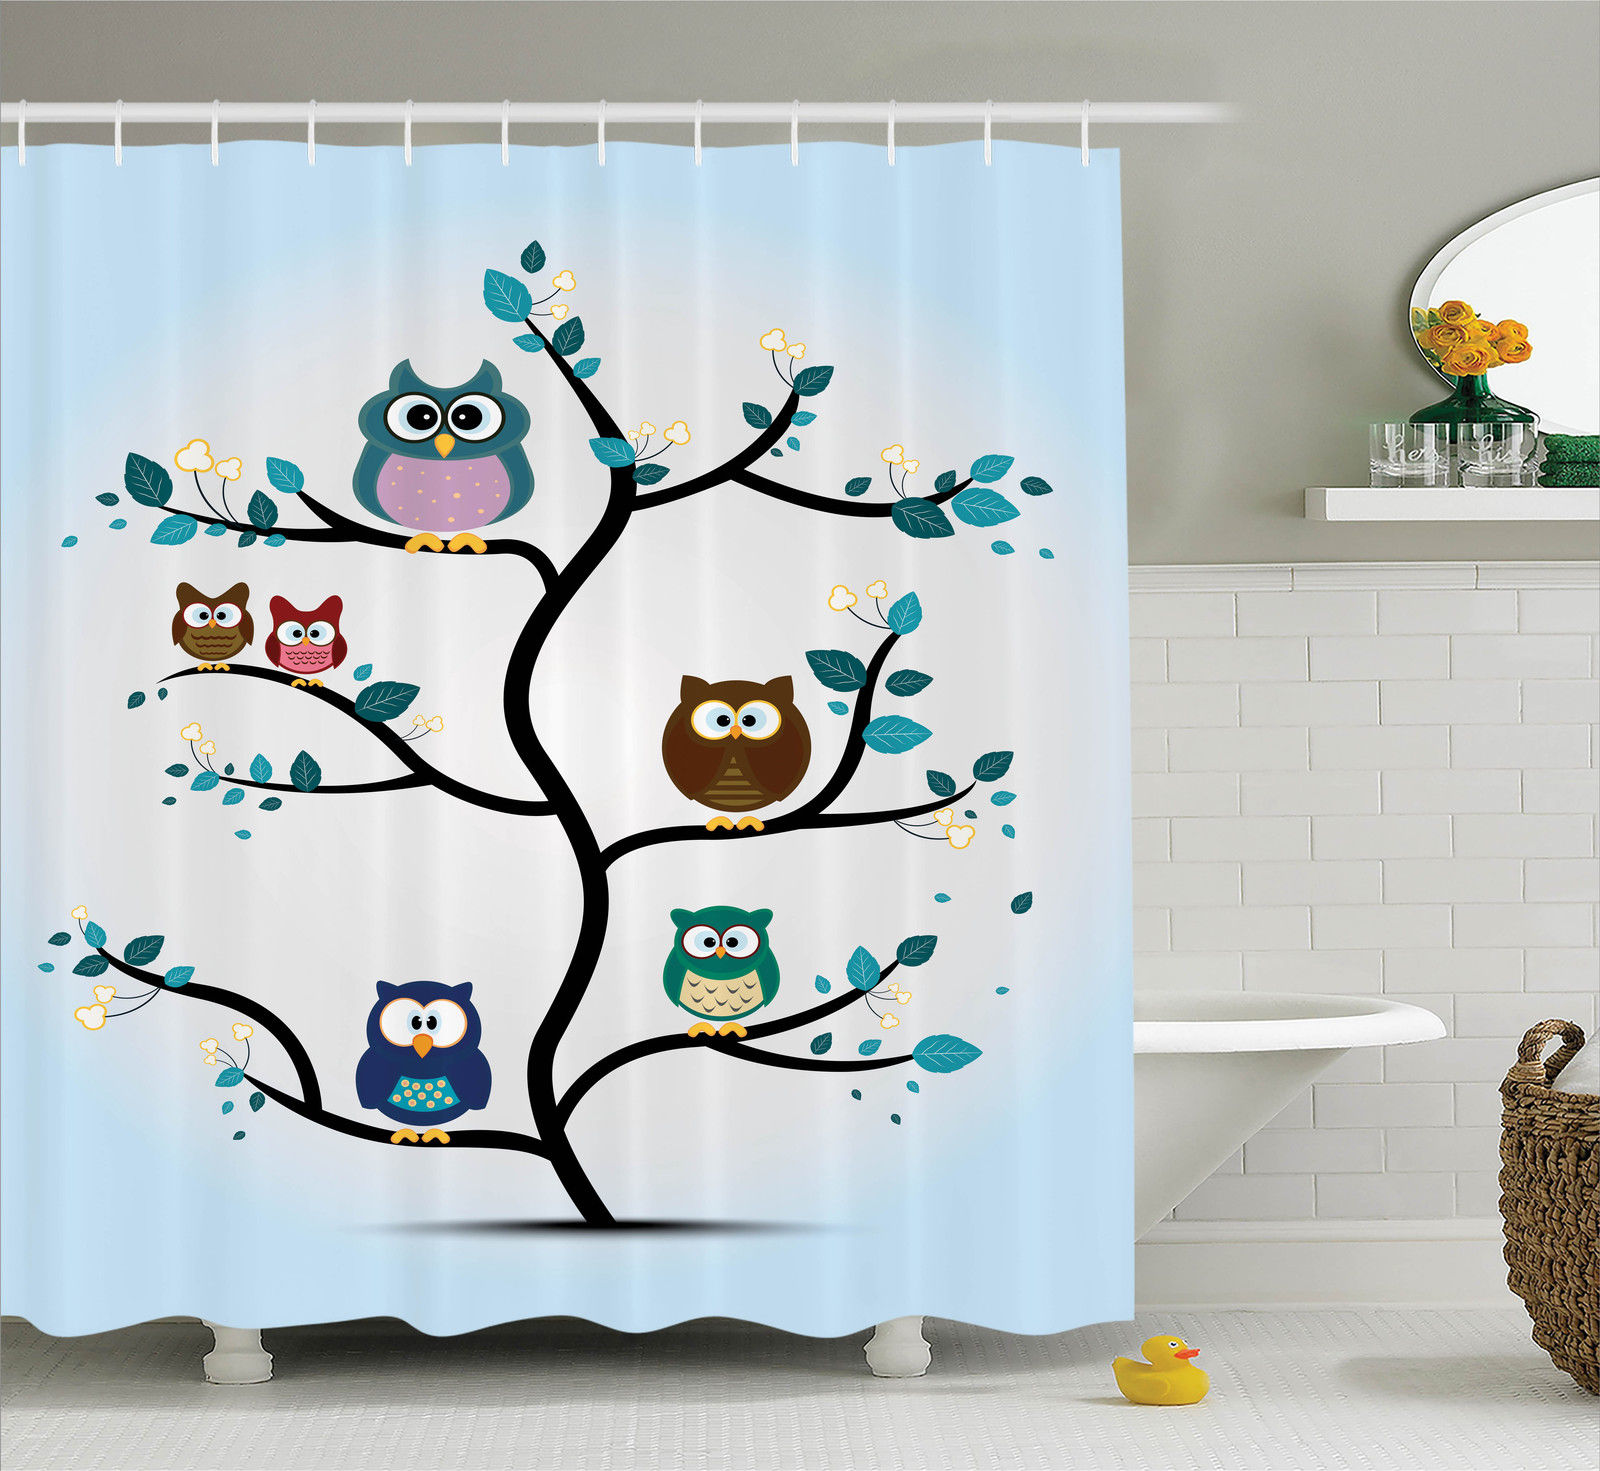 owls home decor shower curtain set owl family perched on a tree love grace nocturnal